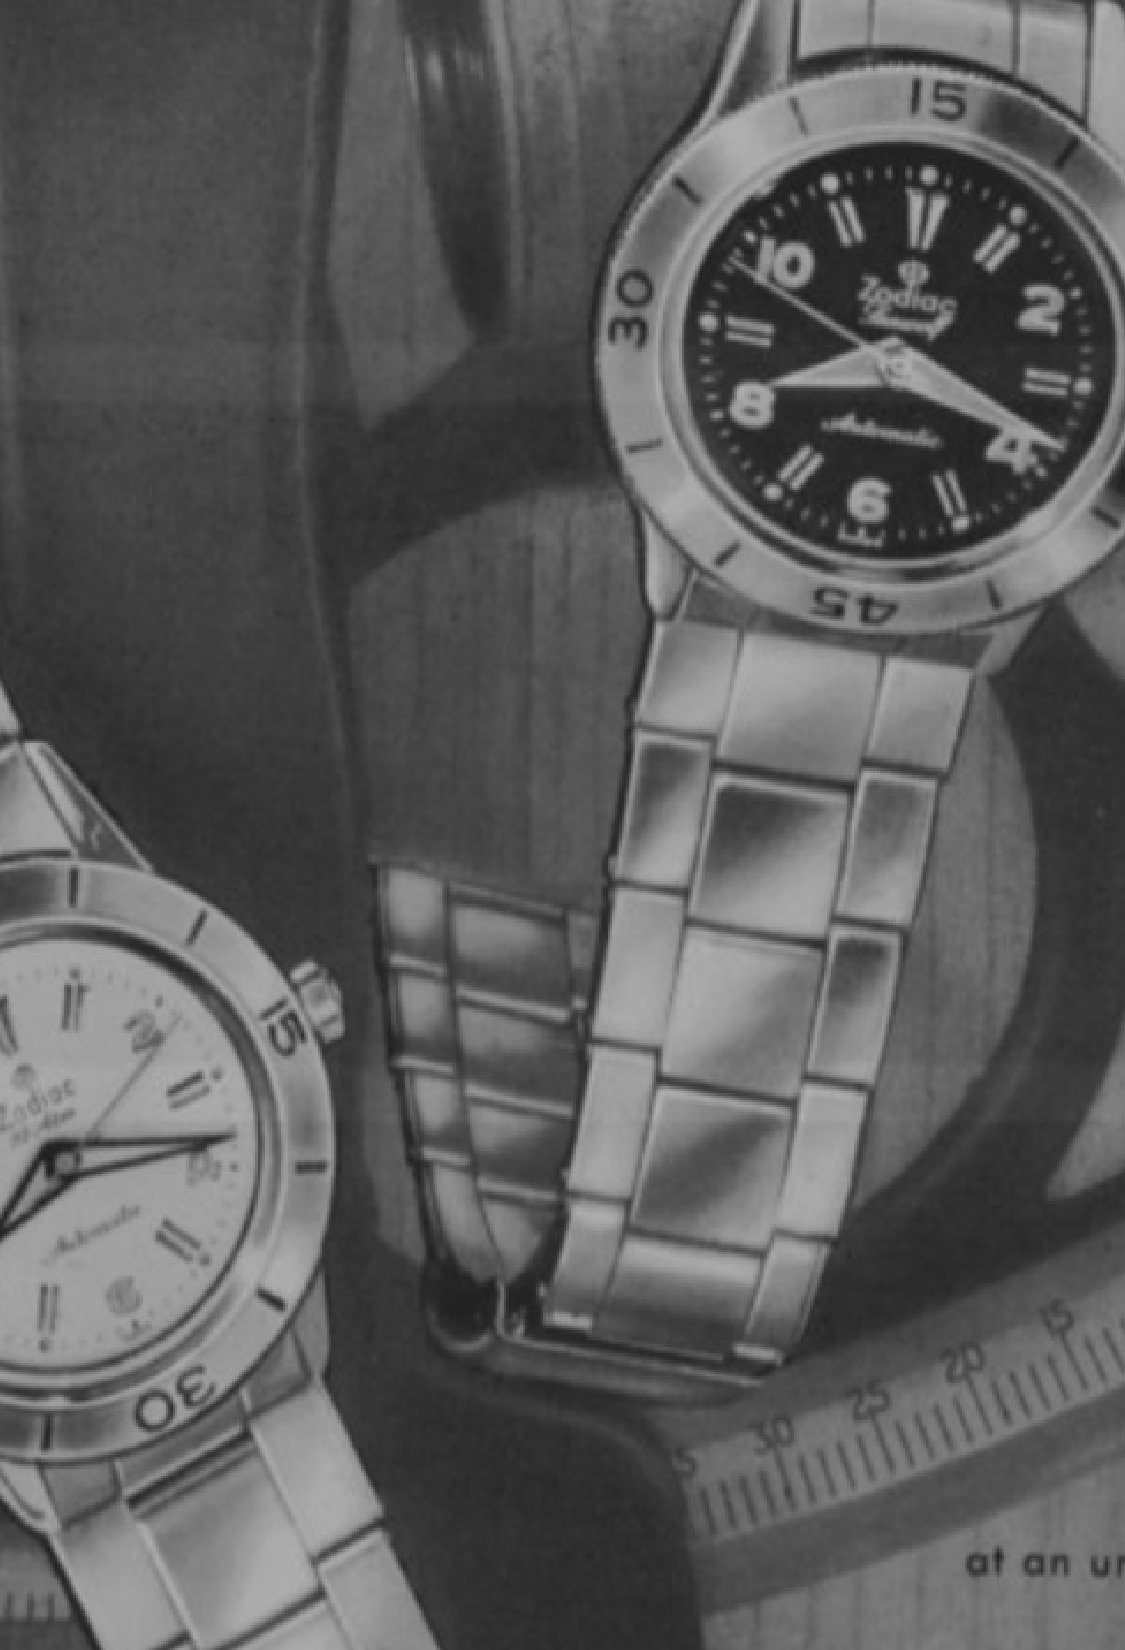 A vintage ad for the Super Sea Wolf Skin Diver